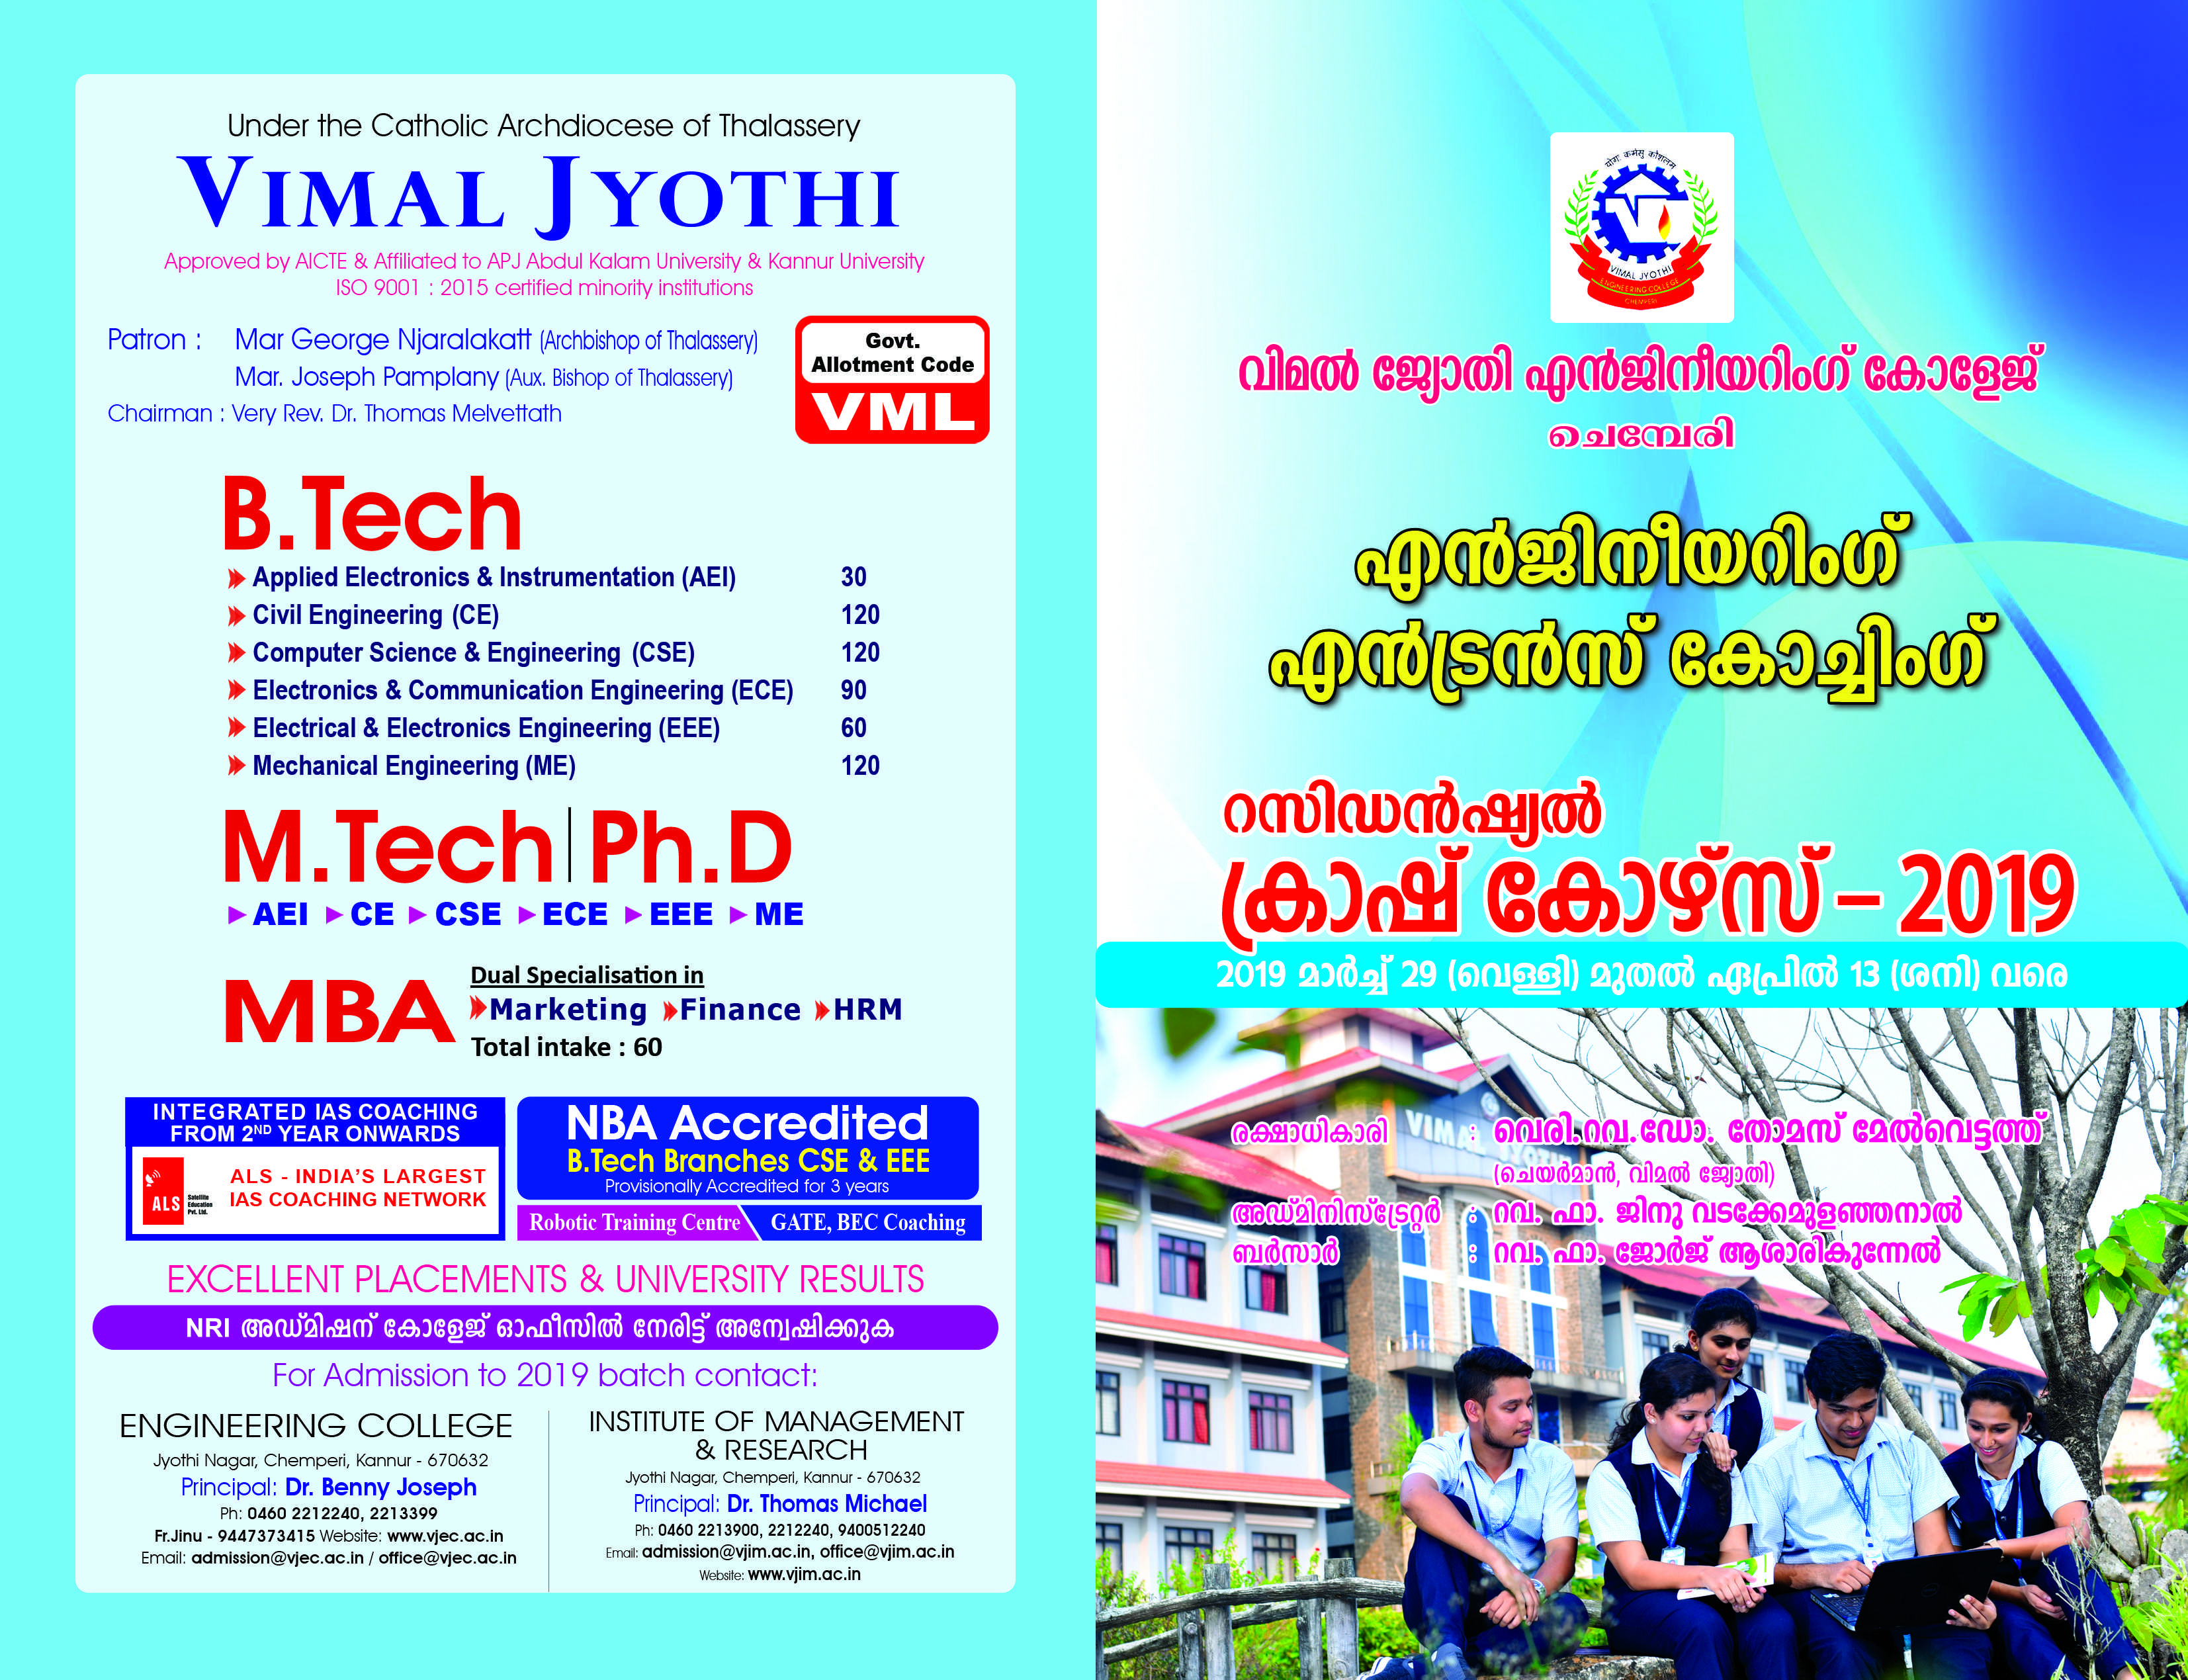 Engineeing entrance crash course at Vimal Jyothi